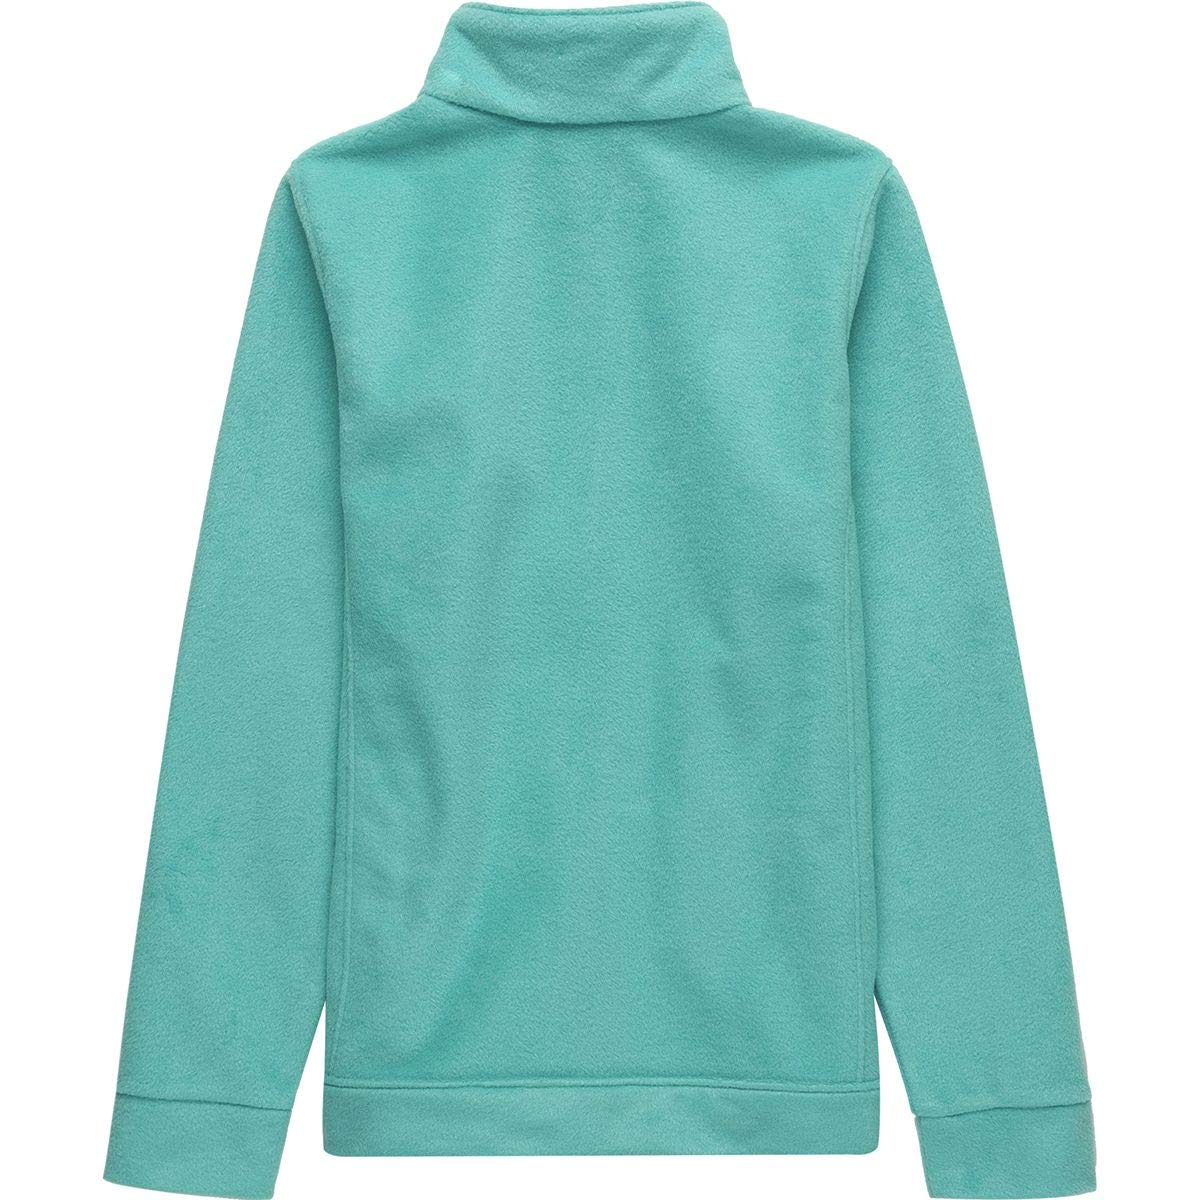 Girls Columbia Fairchild Ridge Fleece Full-Zip Jacket